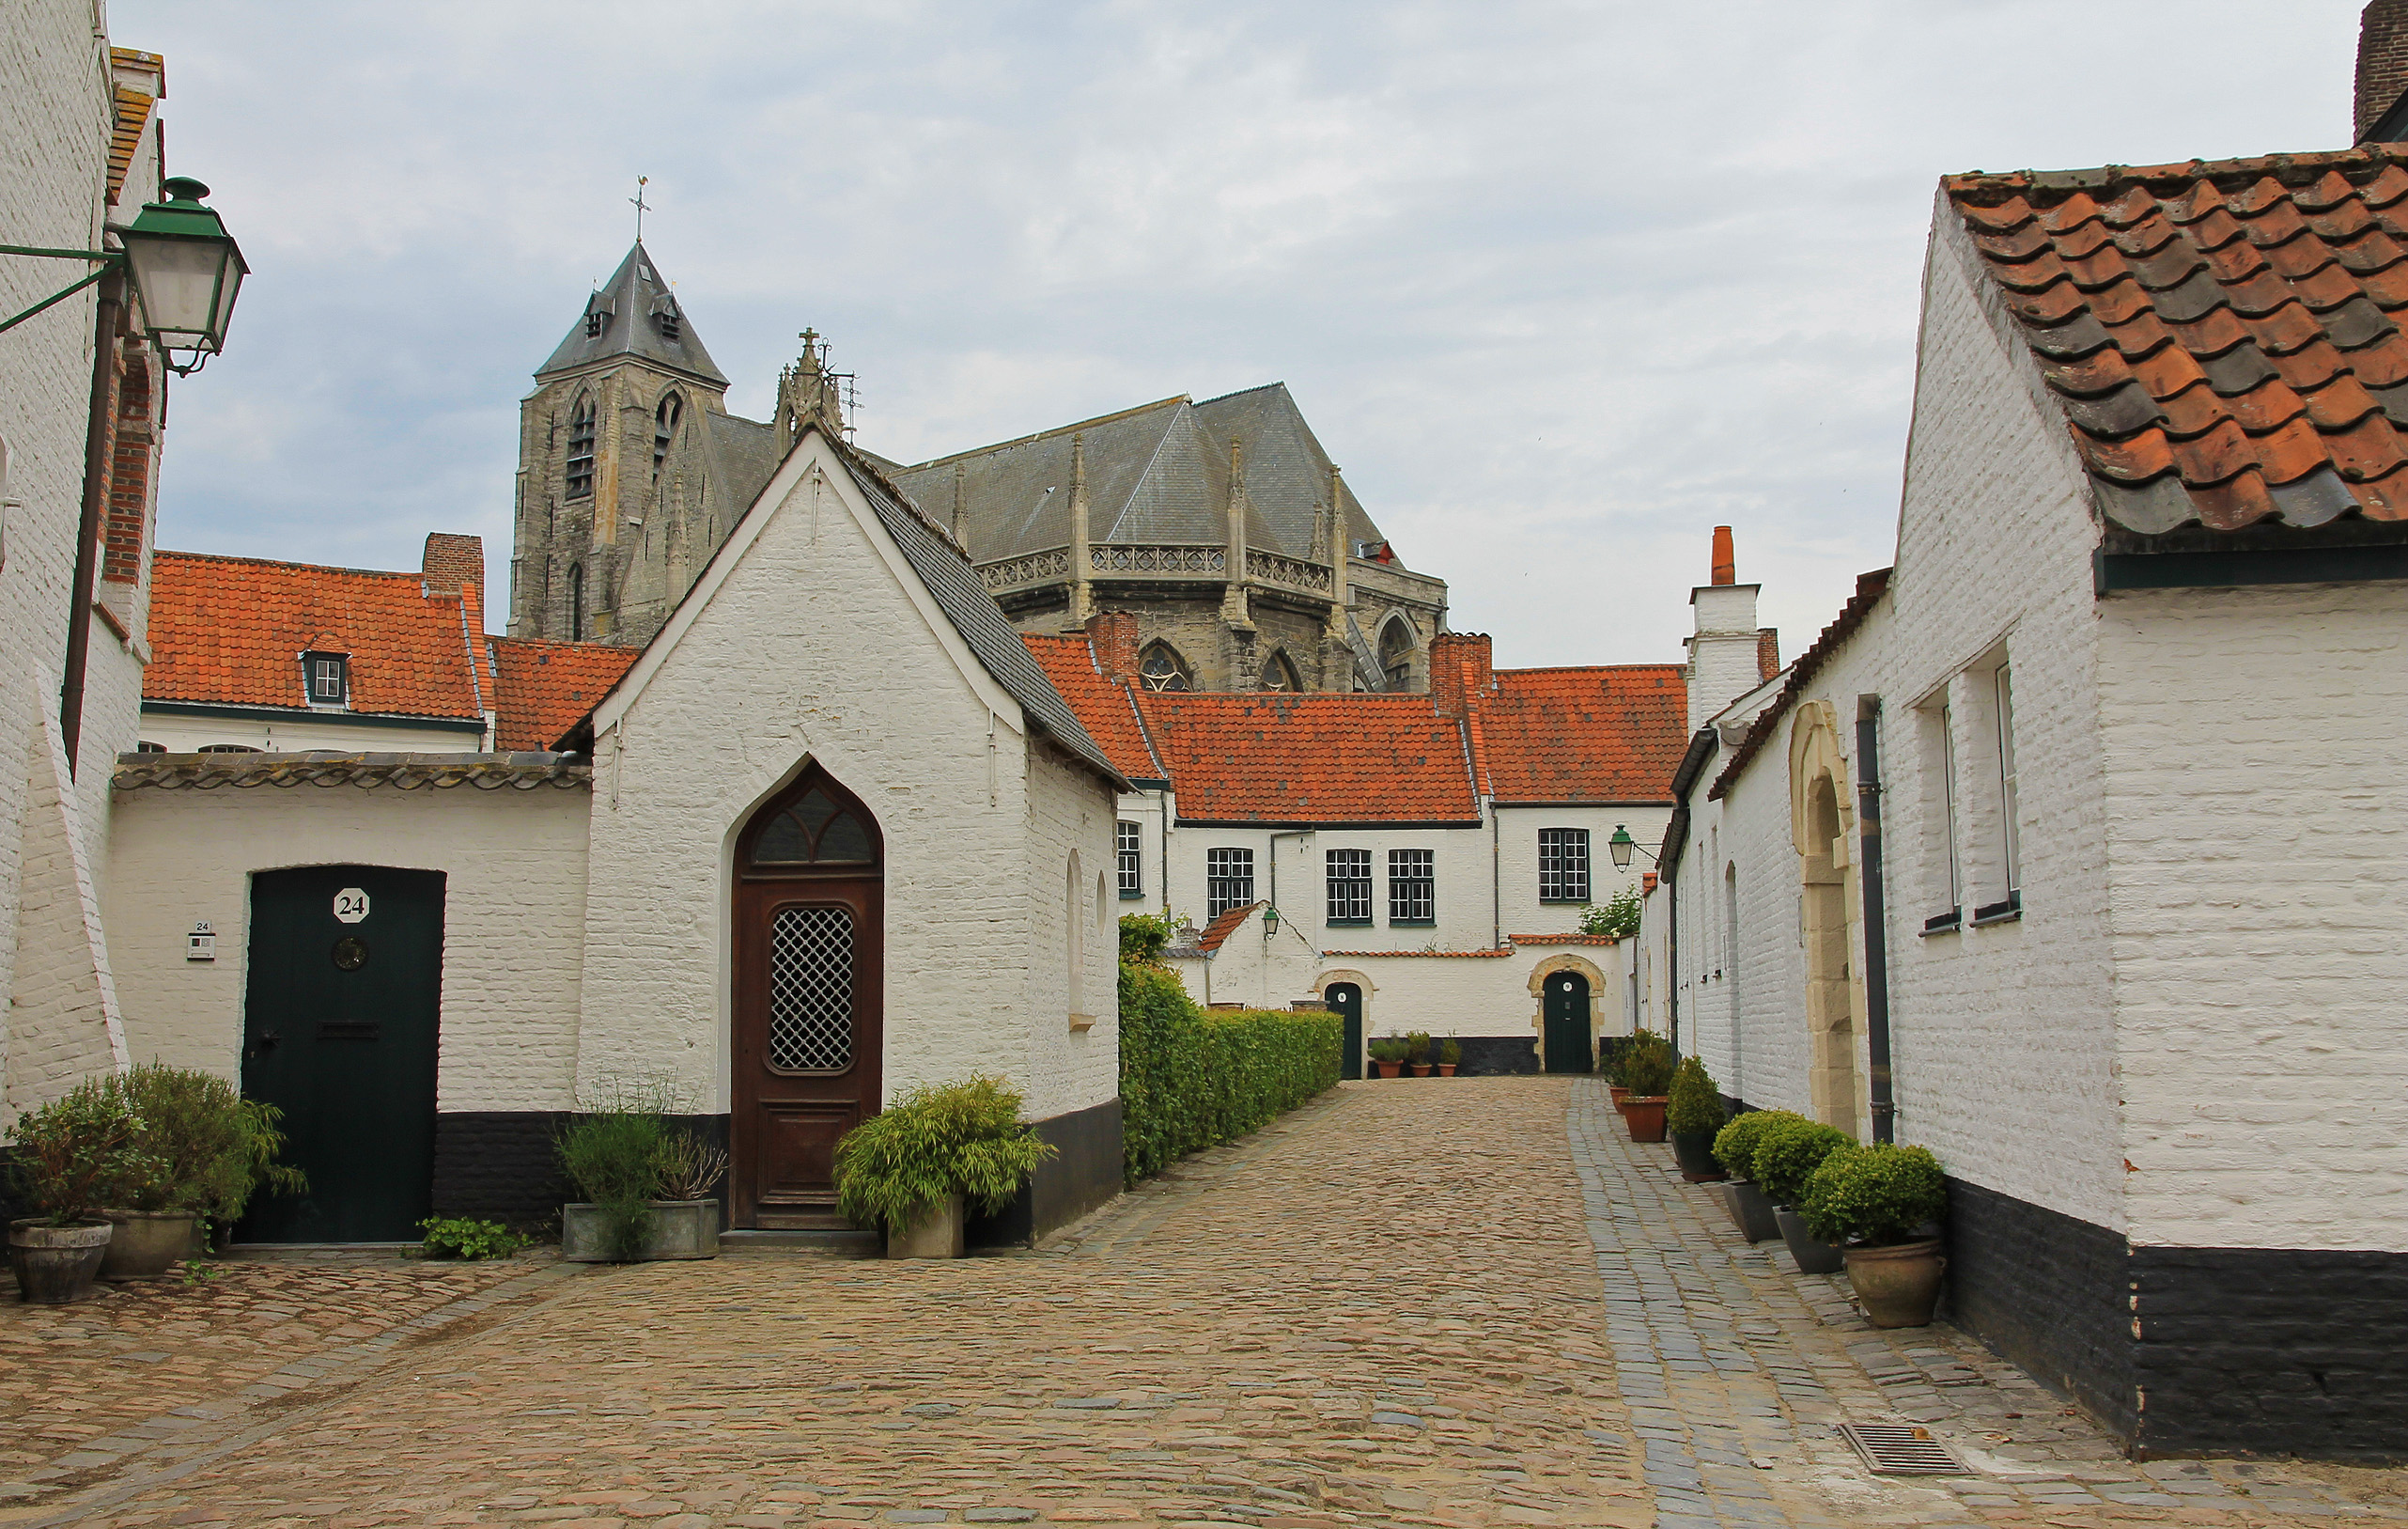 View on the church of Our Lady from the béguinage of Kortrijk.